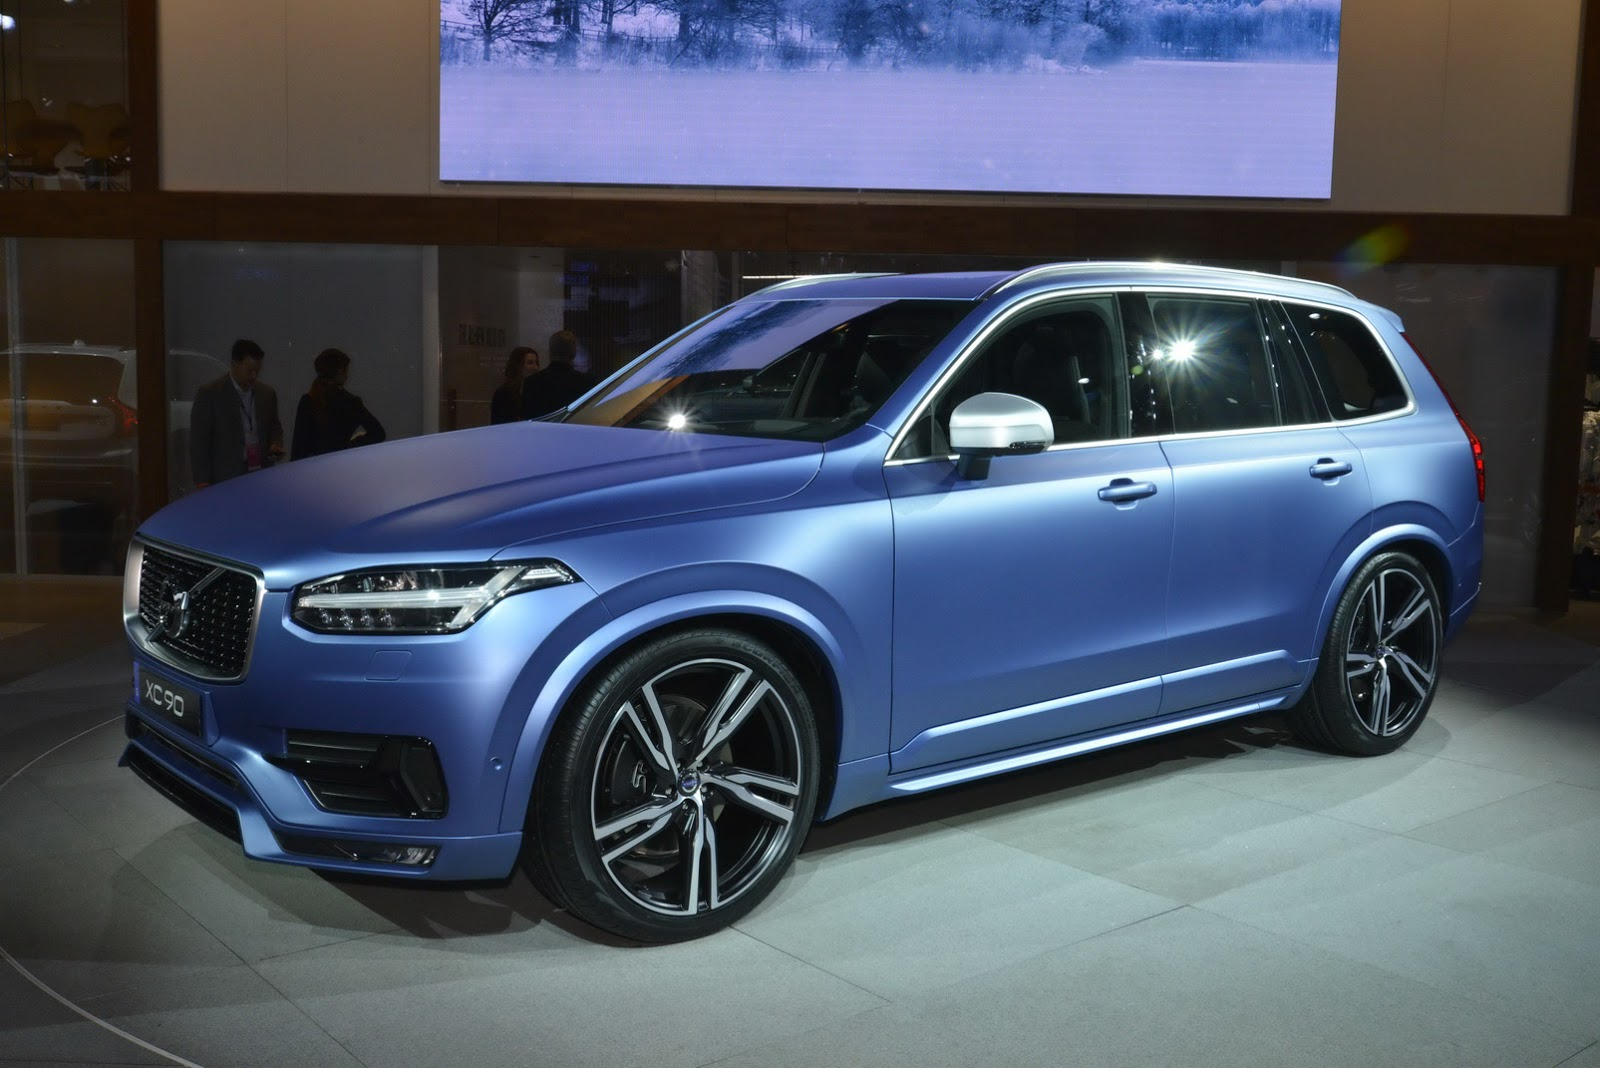 2016 volvo xc90 r design information 1191 cars performance reviews and test drive. Black Bedroom Furniture Sets. Home Design Ideas